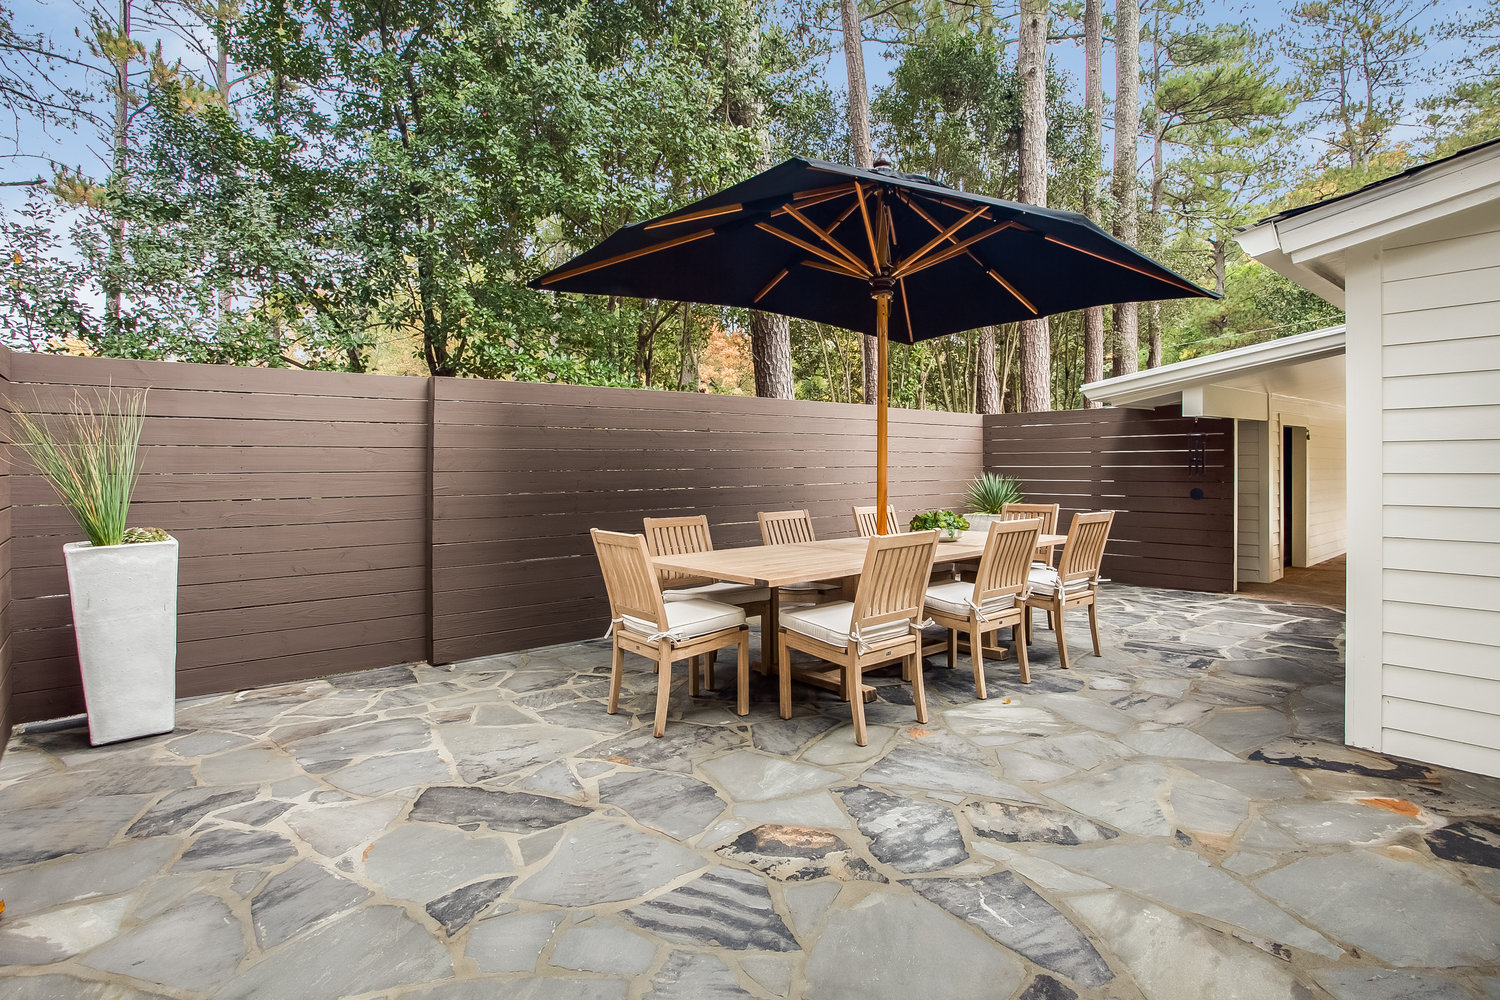 Outdoor Dining Table with Umbrella, Chairs, and in the Backyard.